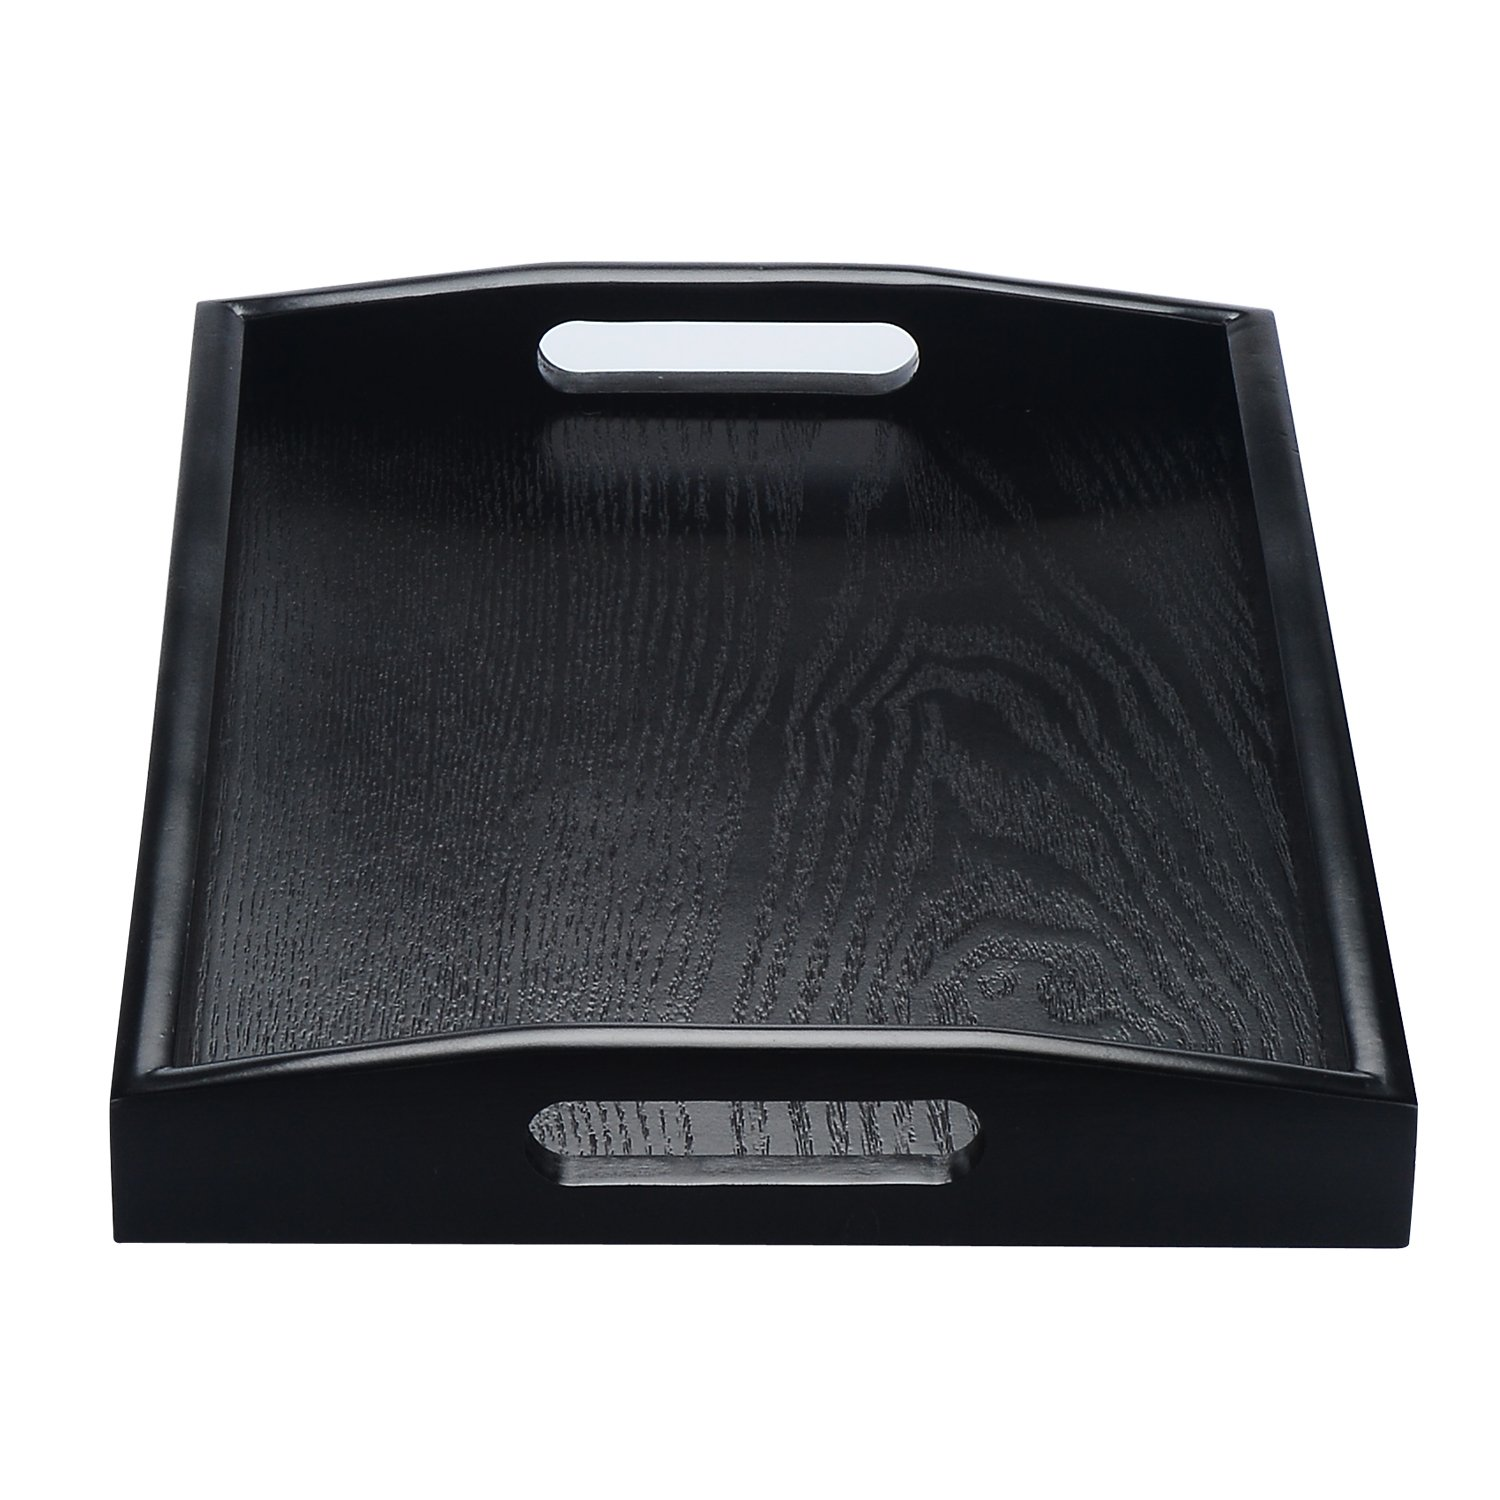 JPCRAFT Rectangle Wooden Serving Tray, Black, 14 by 9-Inch by JPCRAFT (Image #4)